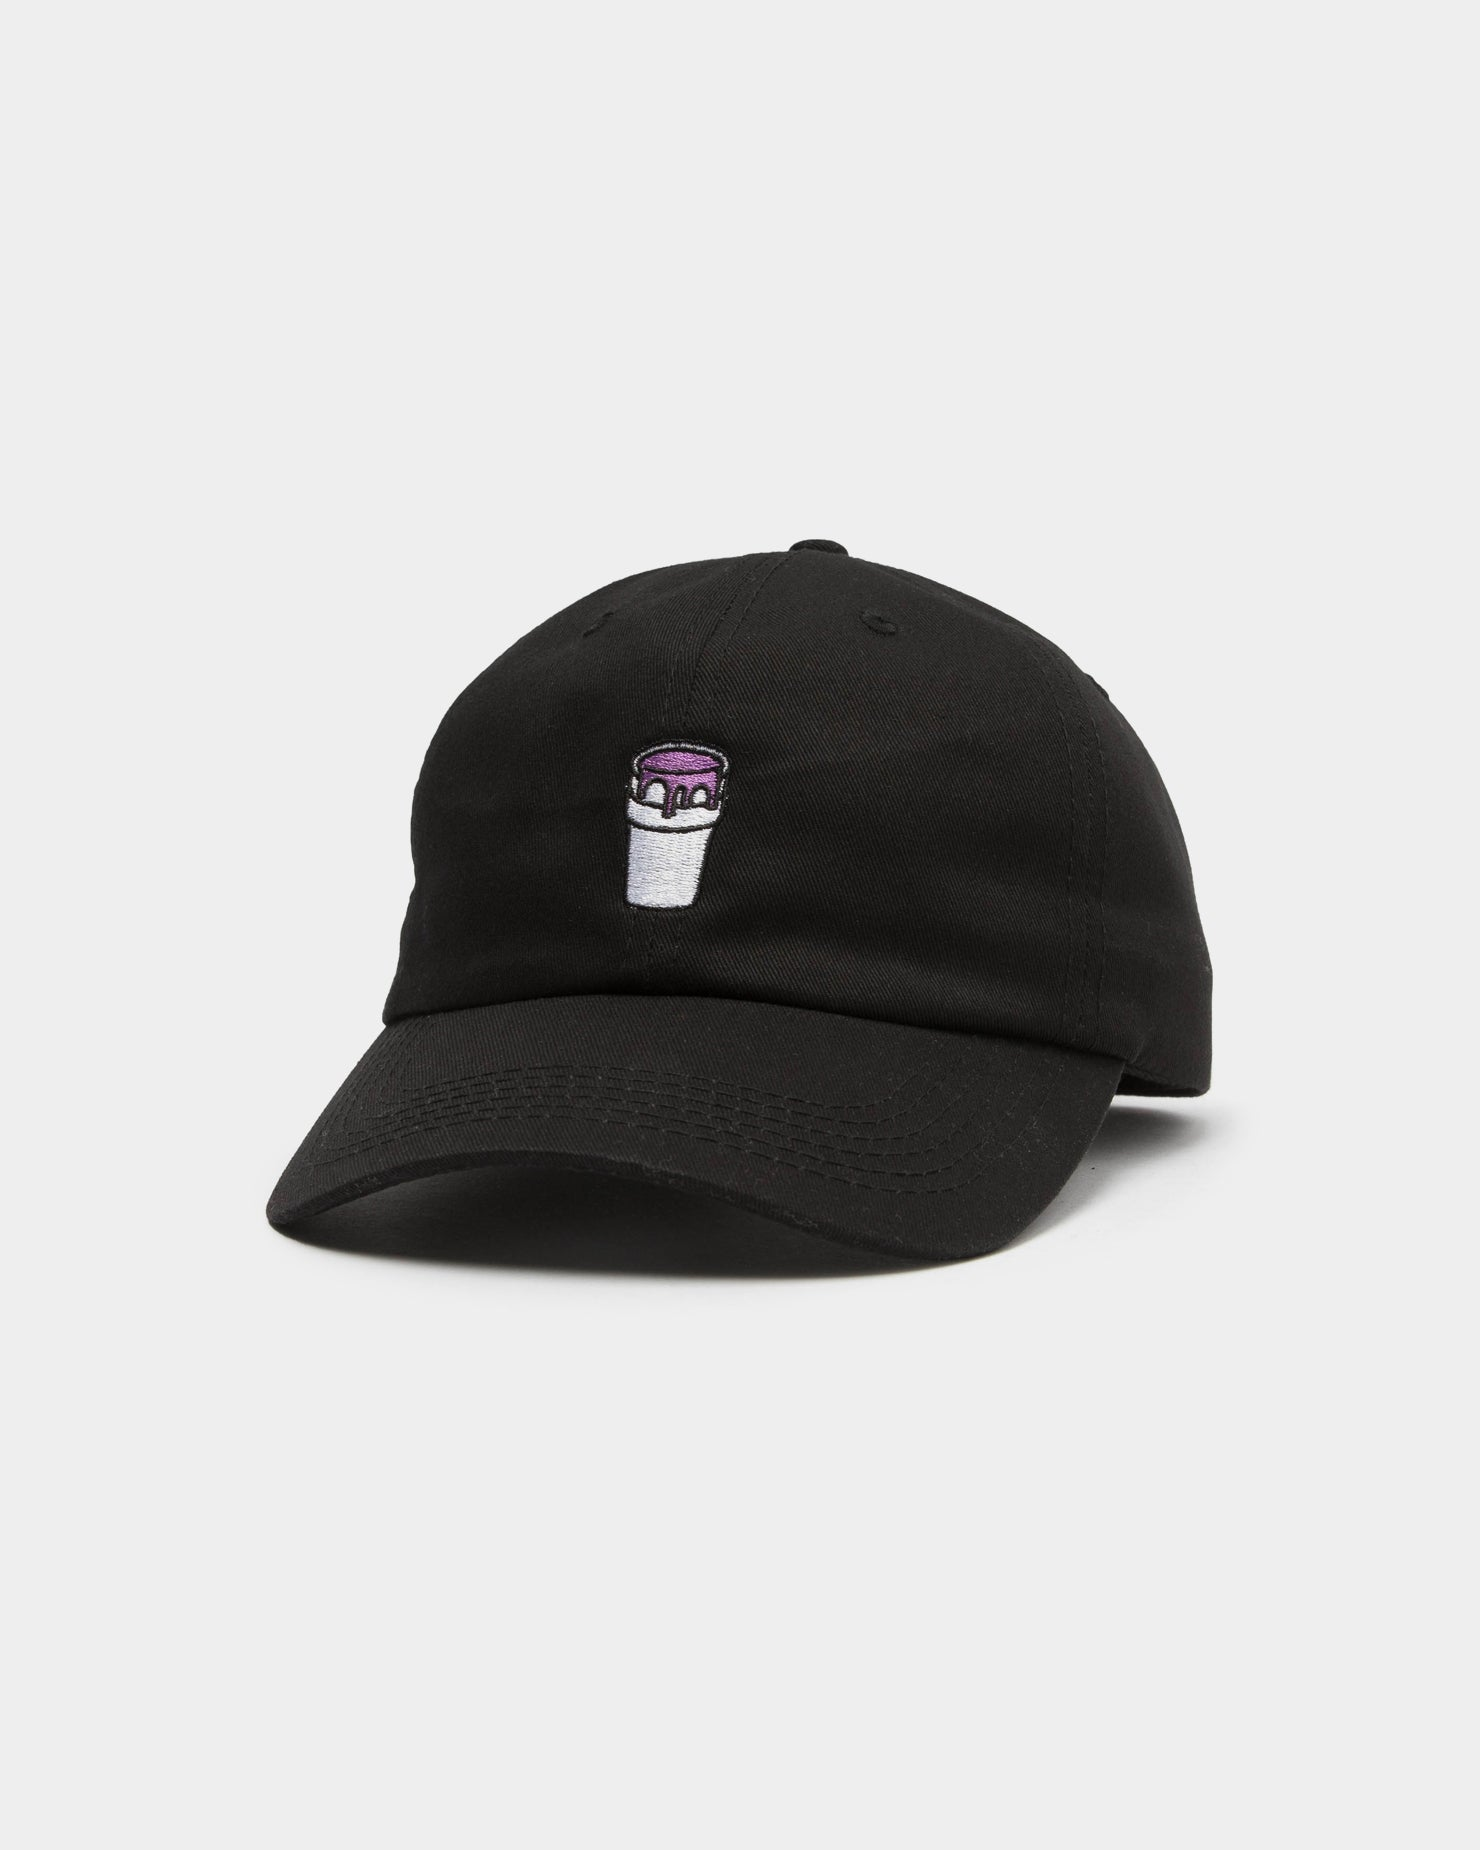 LEAN DREAMS STRAPBACK - Black